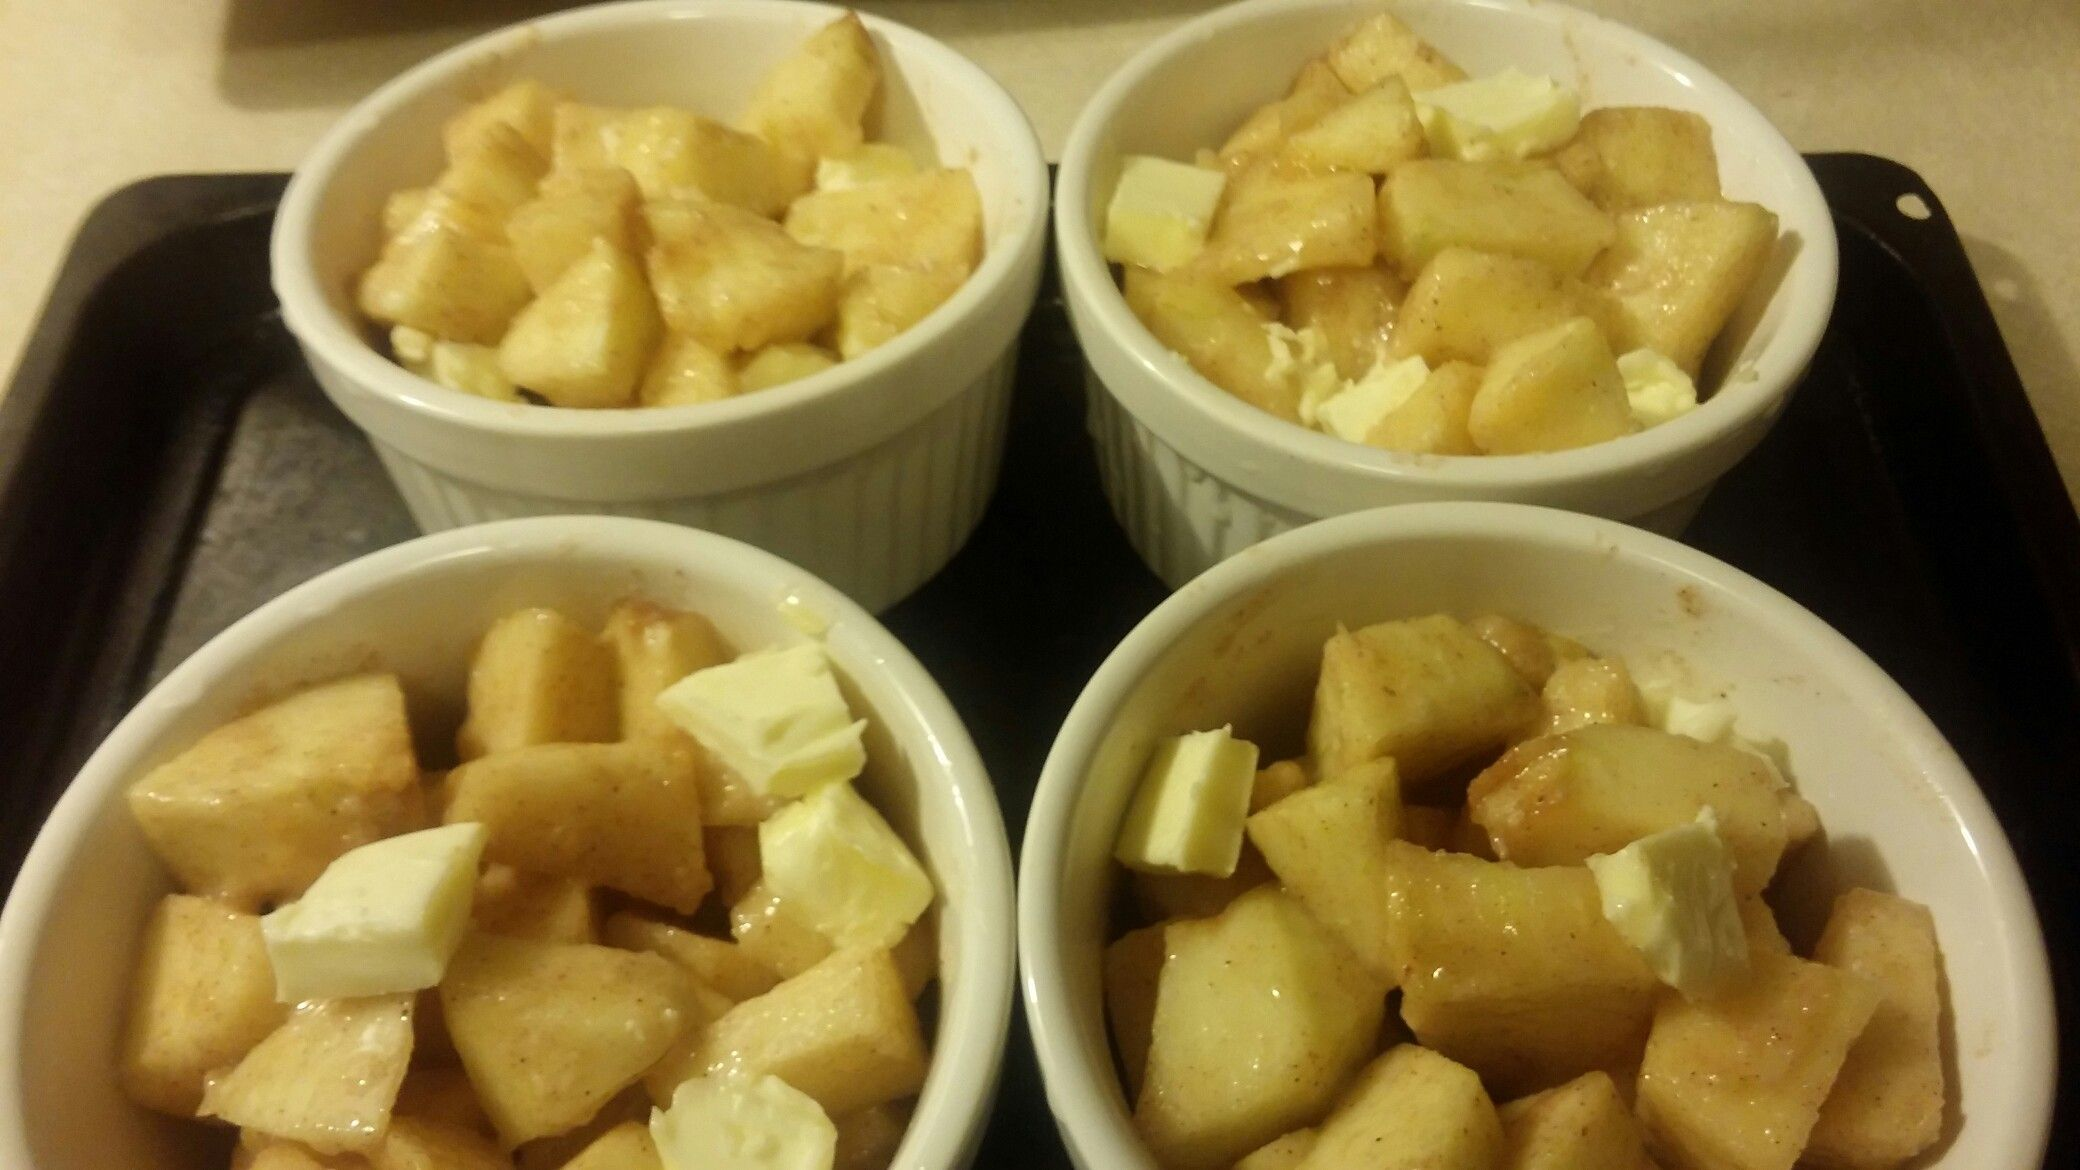 Diced Apple with sugar, butter and cinnamon Diced apples